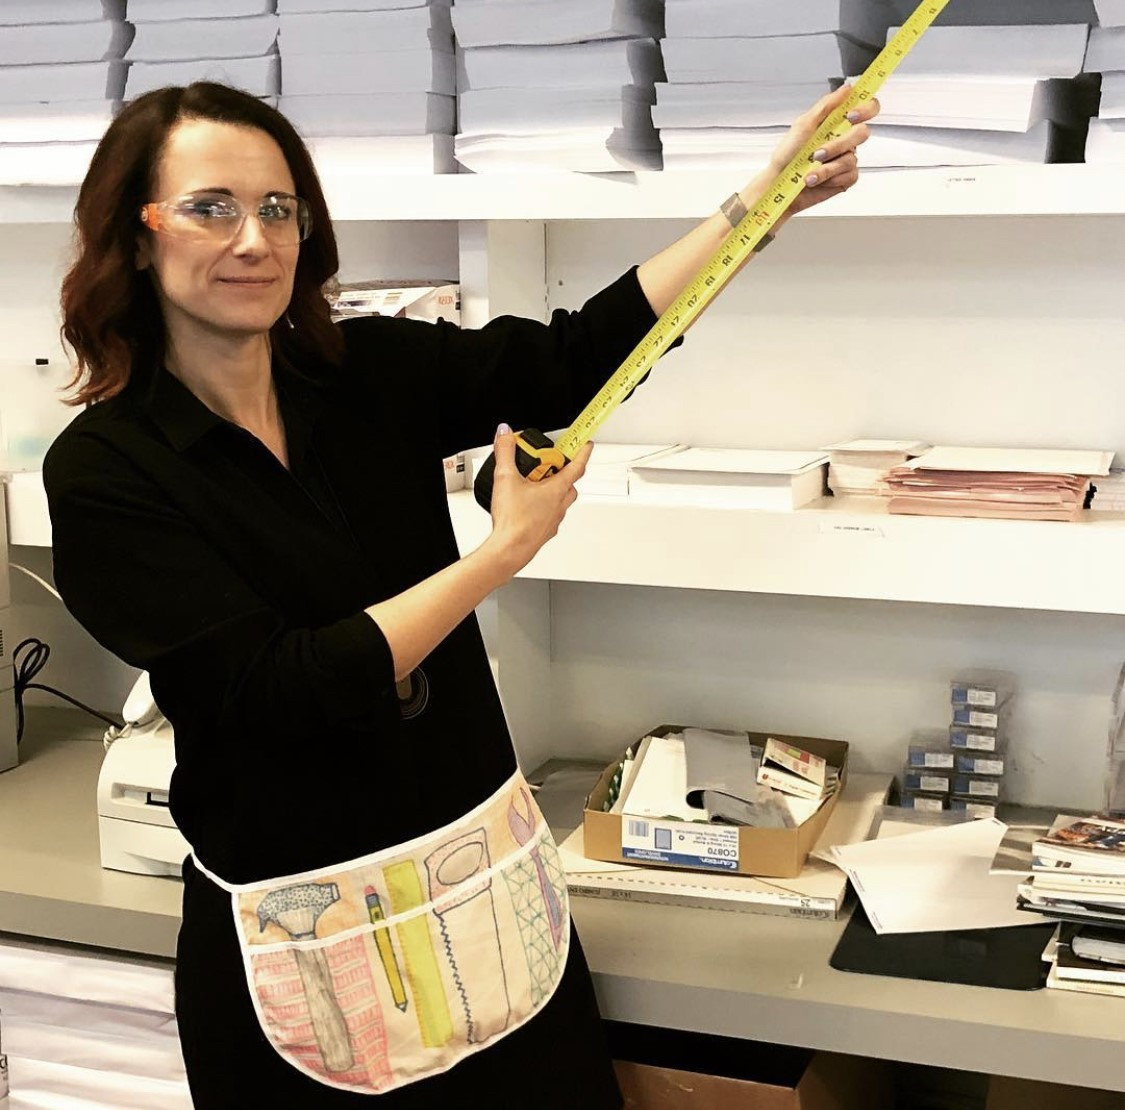 A person wearing a drawn tool belt holds a tape measure